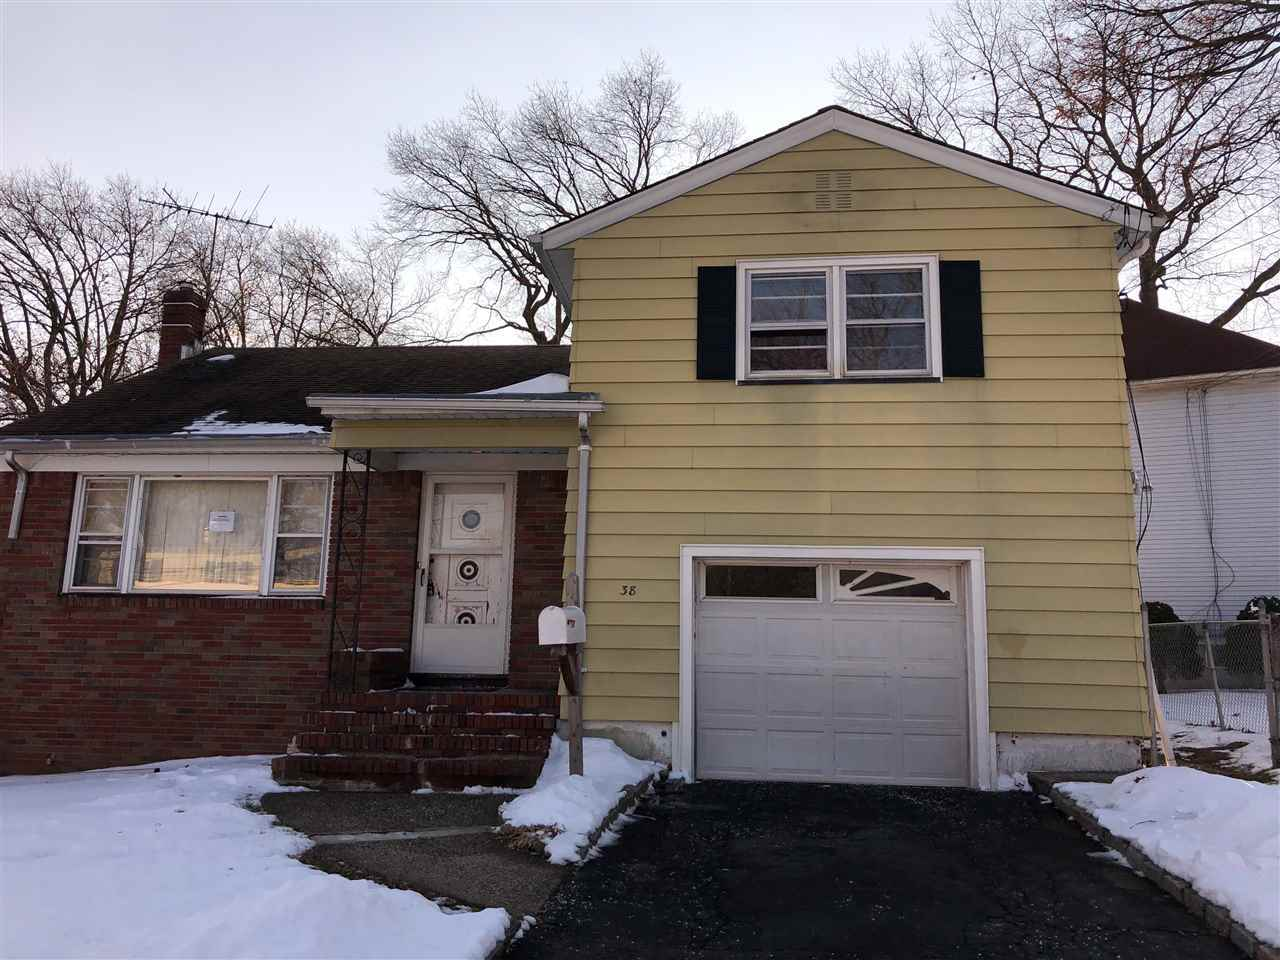 $314,500 - 3Br/2Ba -  for Sale in Union Twp